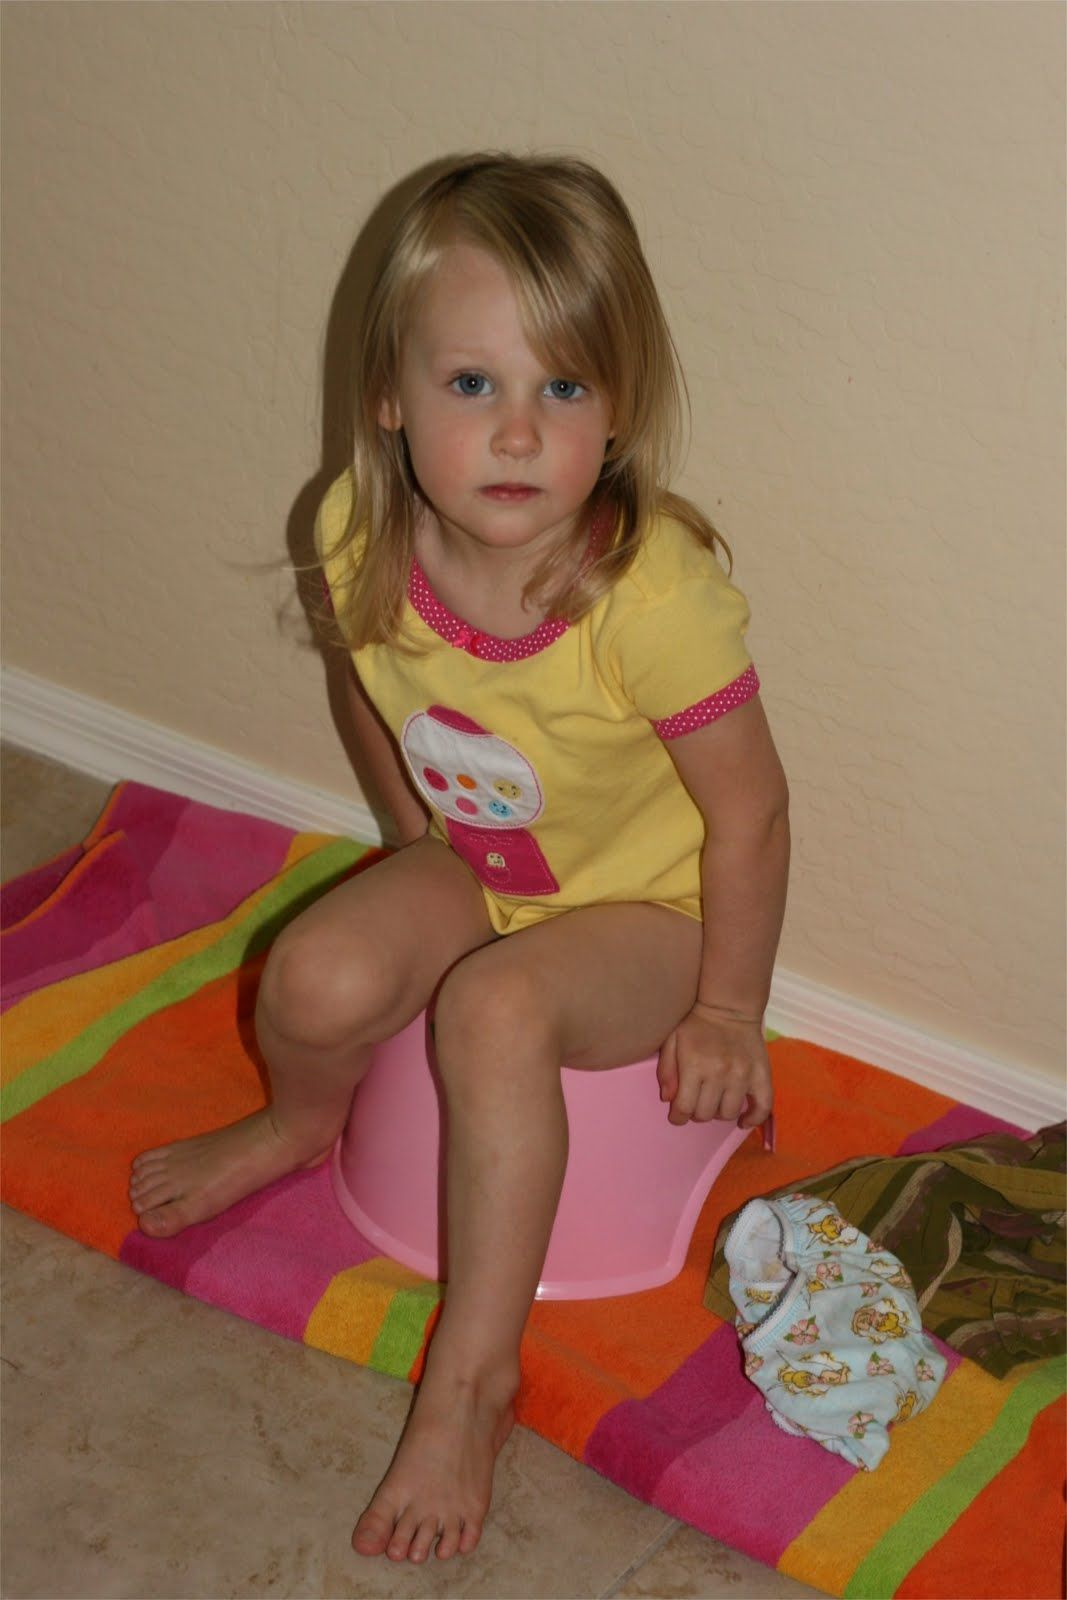 Bedwetting daughter story - an Adult Baby Story - Baby